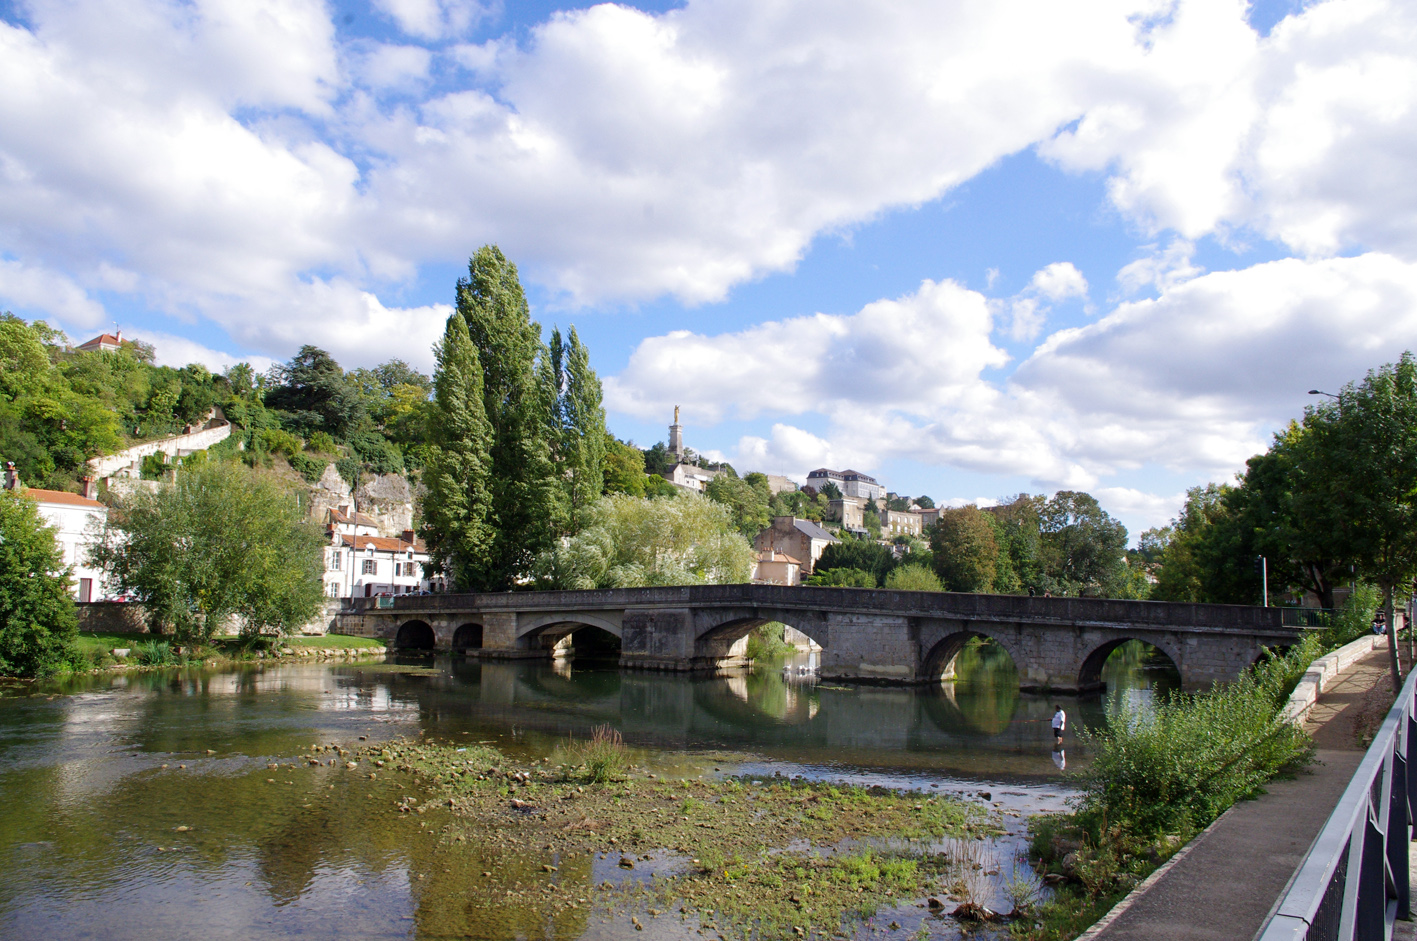 Pont joubert wikip dia for Garage poitiers clain